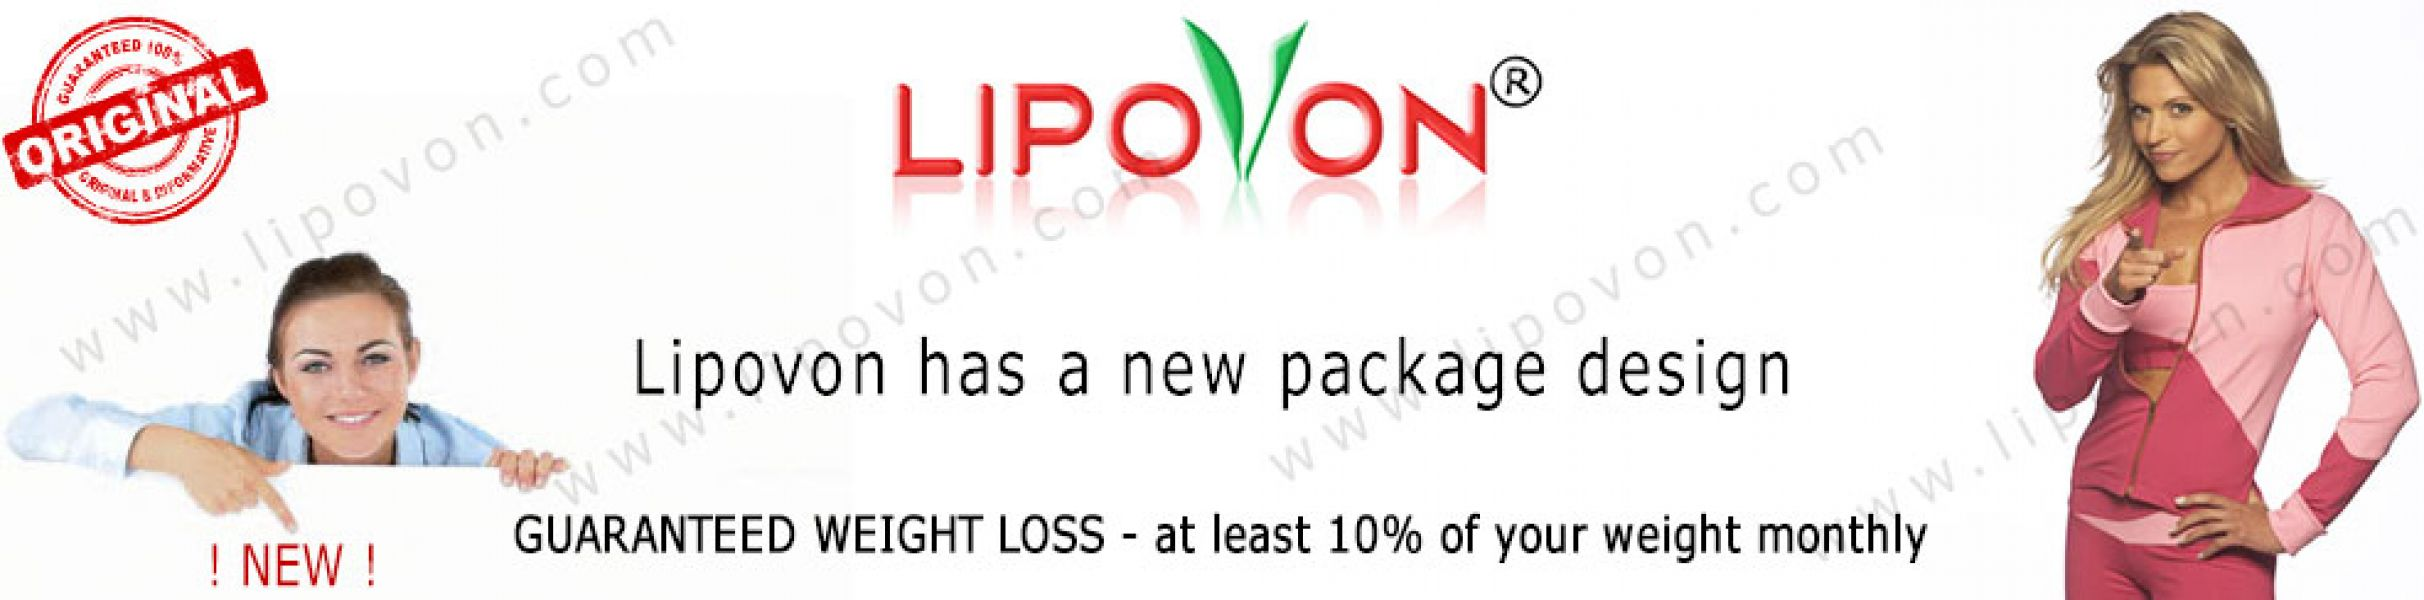 Quick weight loss with Lipovon